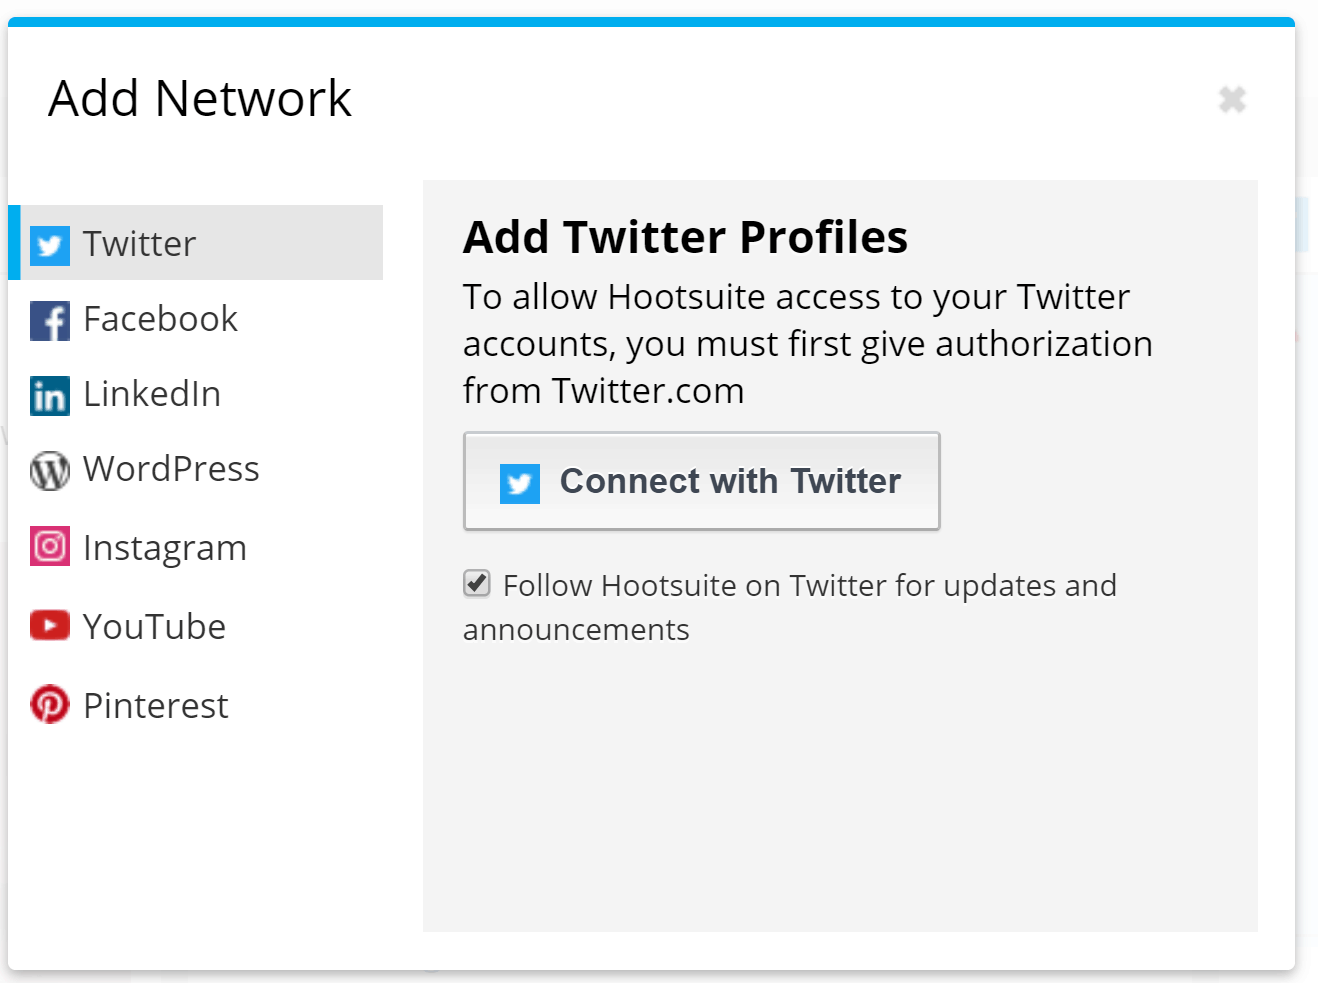 Sprout Social vs. Hootsuite - How to add networks